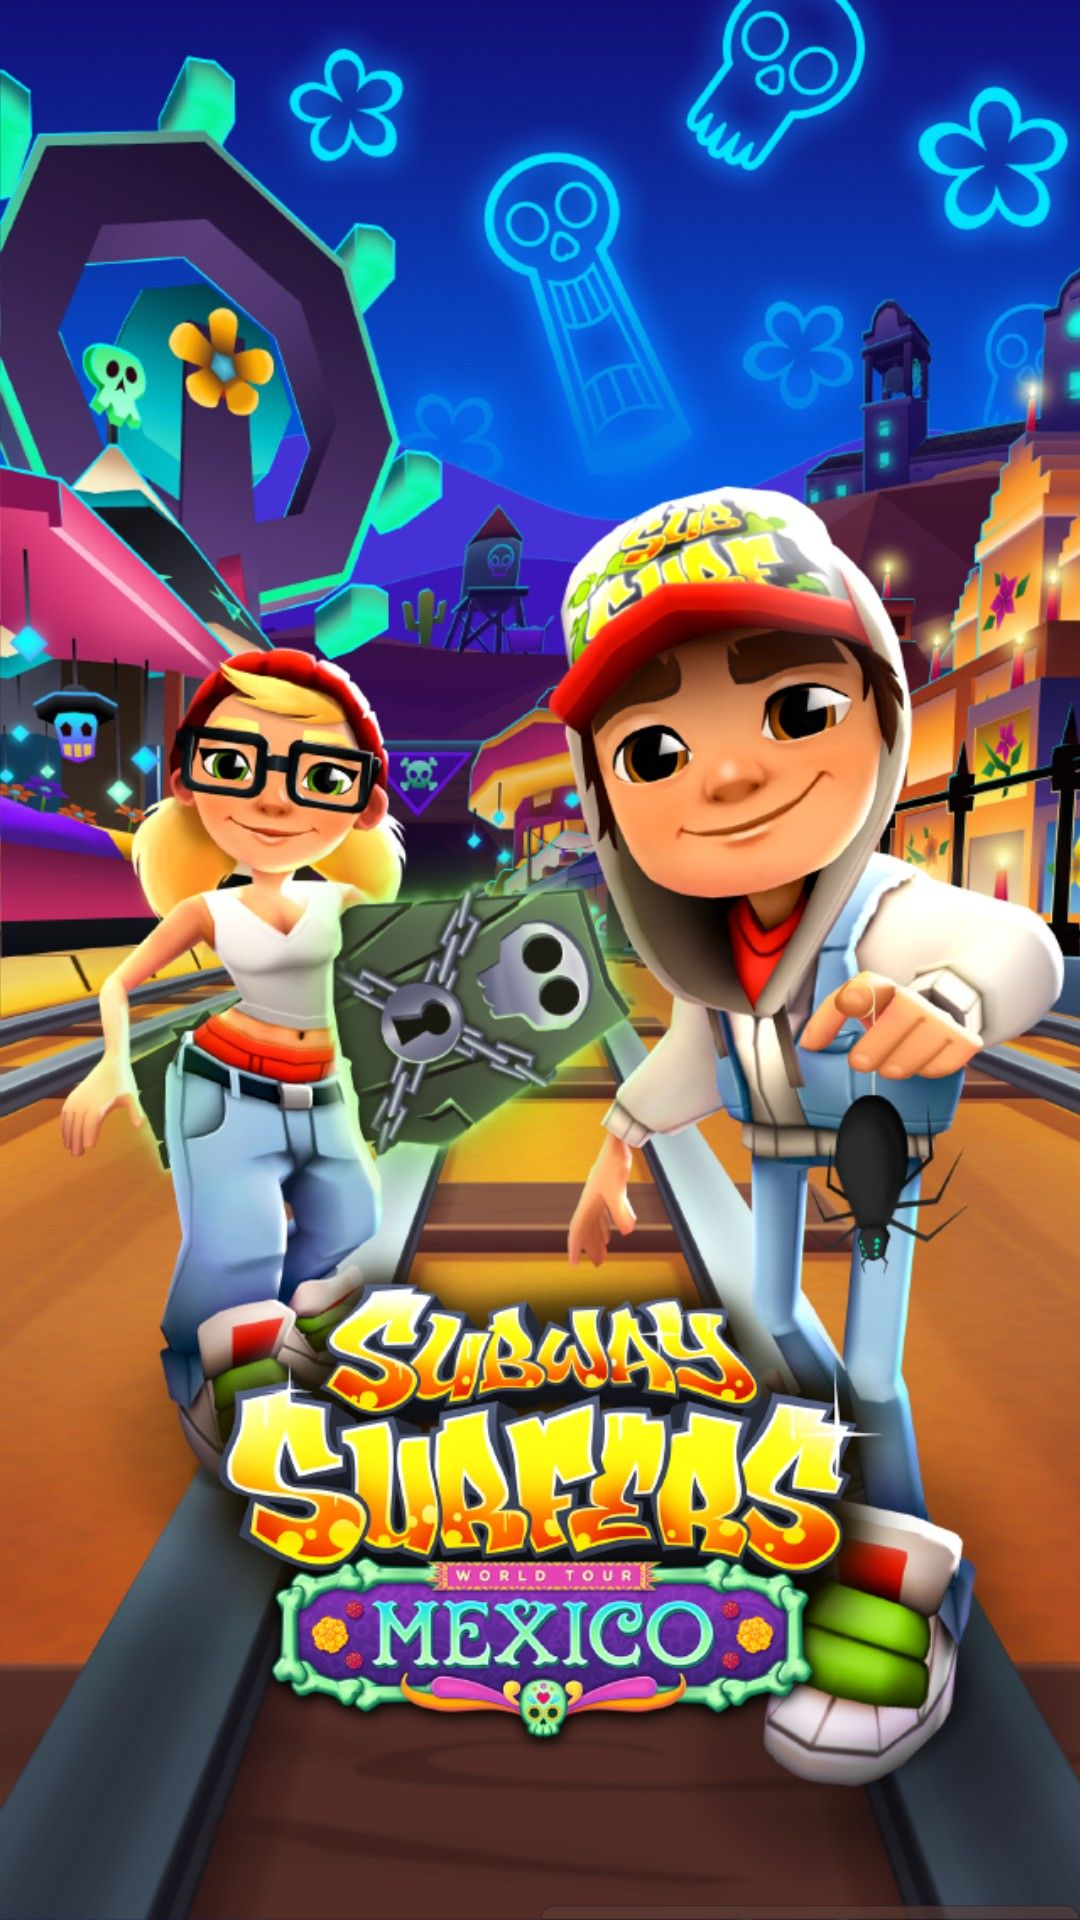 Pin by F on Subway surfers Subway surfers, Game cheats